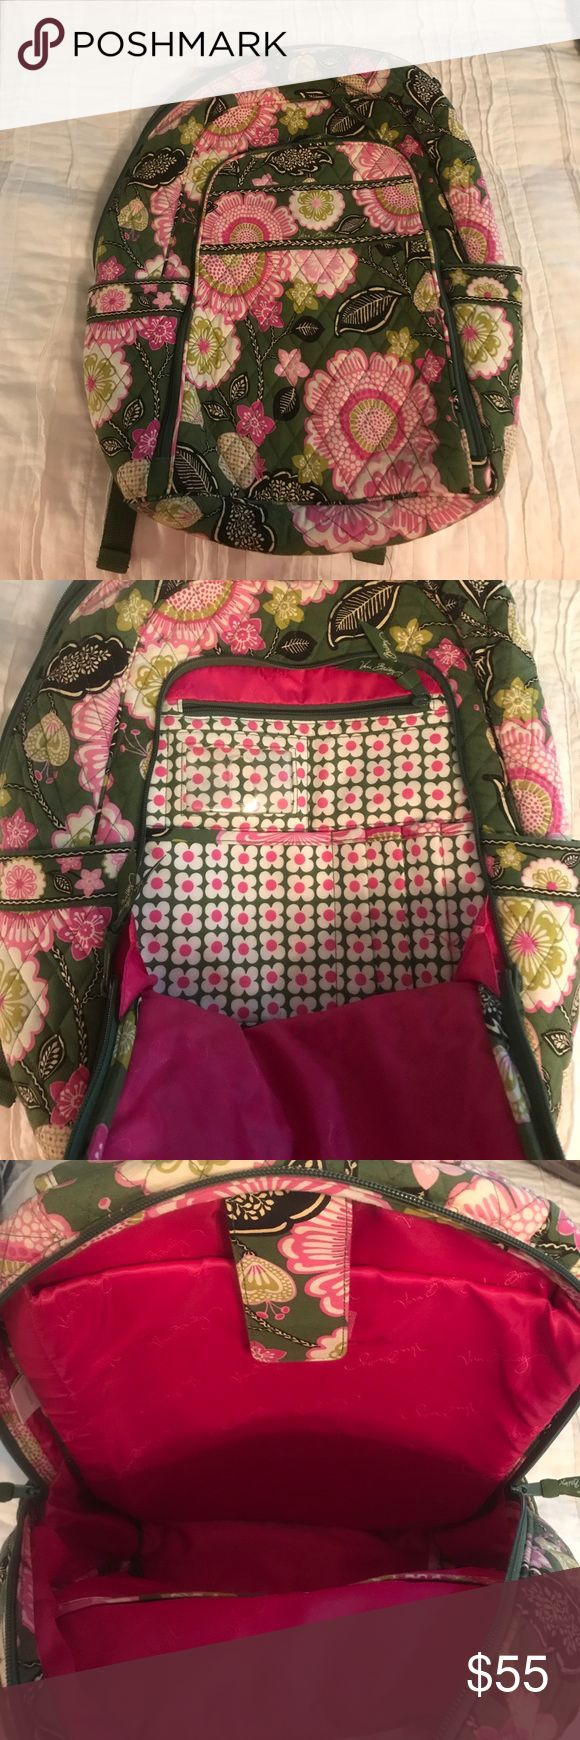 Vera Bradley Campus Backpack - Olivia Pink Great backpack for school!! And in great condition! Only a couple signs of wear from sitting on floor. Vera Bradley Bags Backpacks